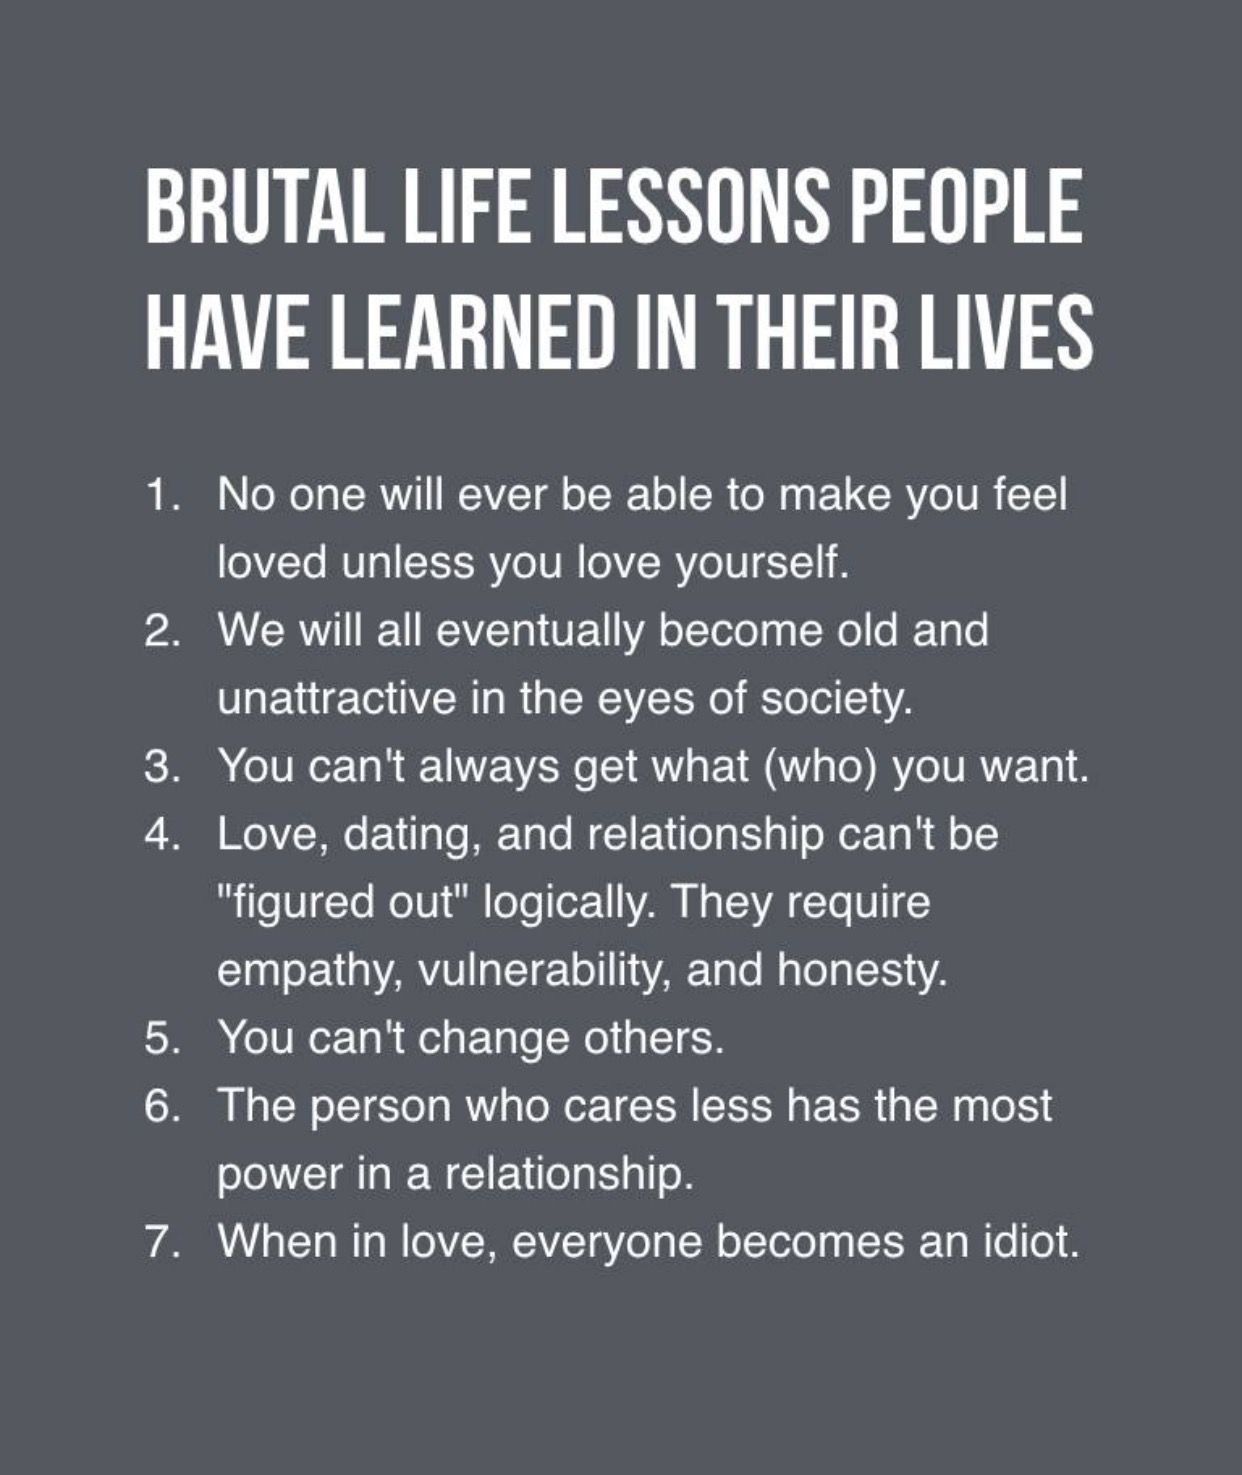 Life Advice Quotes Brutal life lessons | LIFE | Pinterest | Life lessons, Life Quotes  Life Advice Quotes